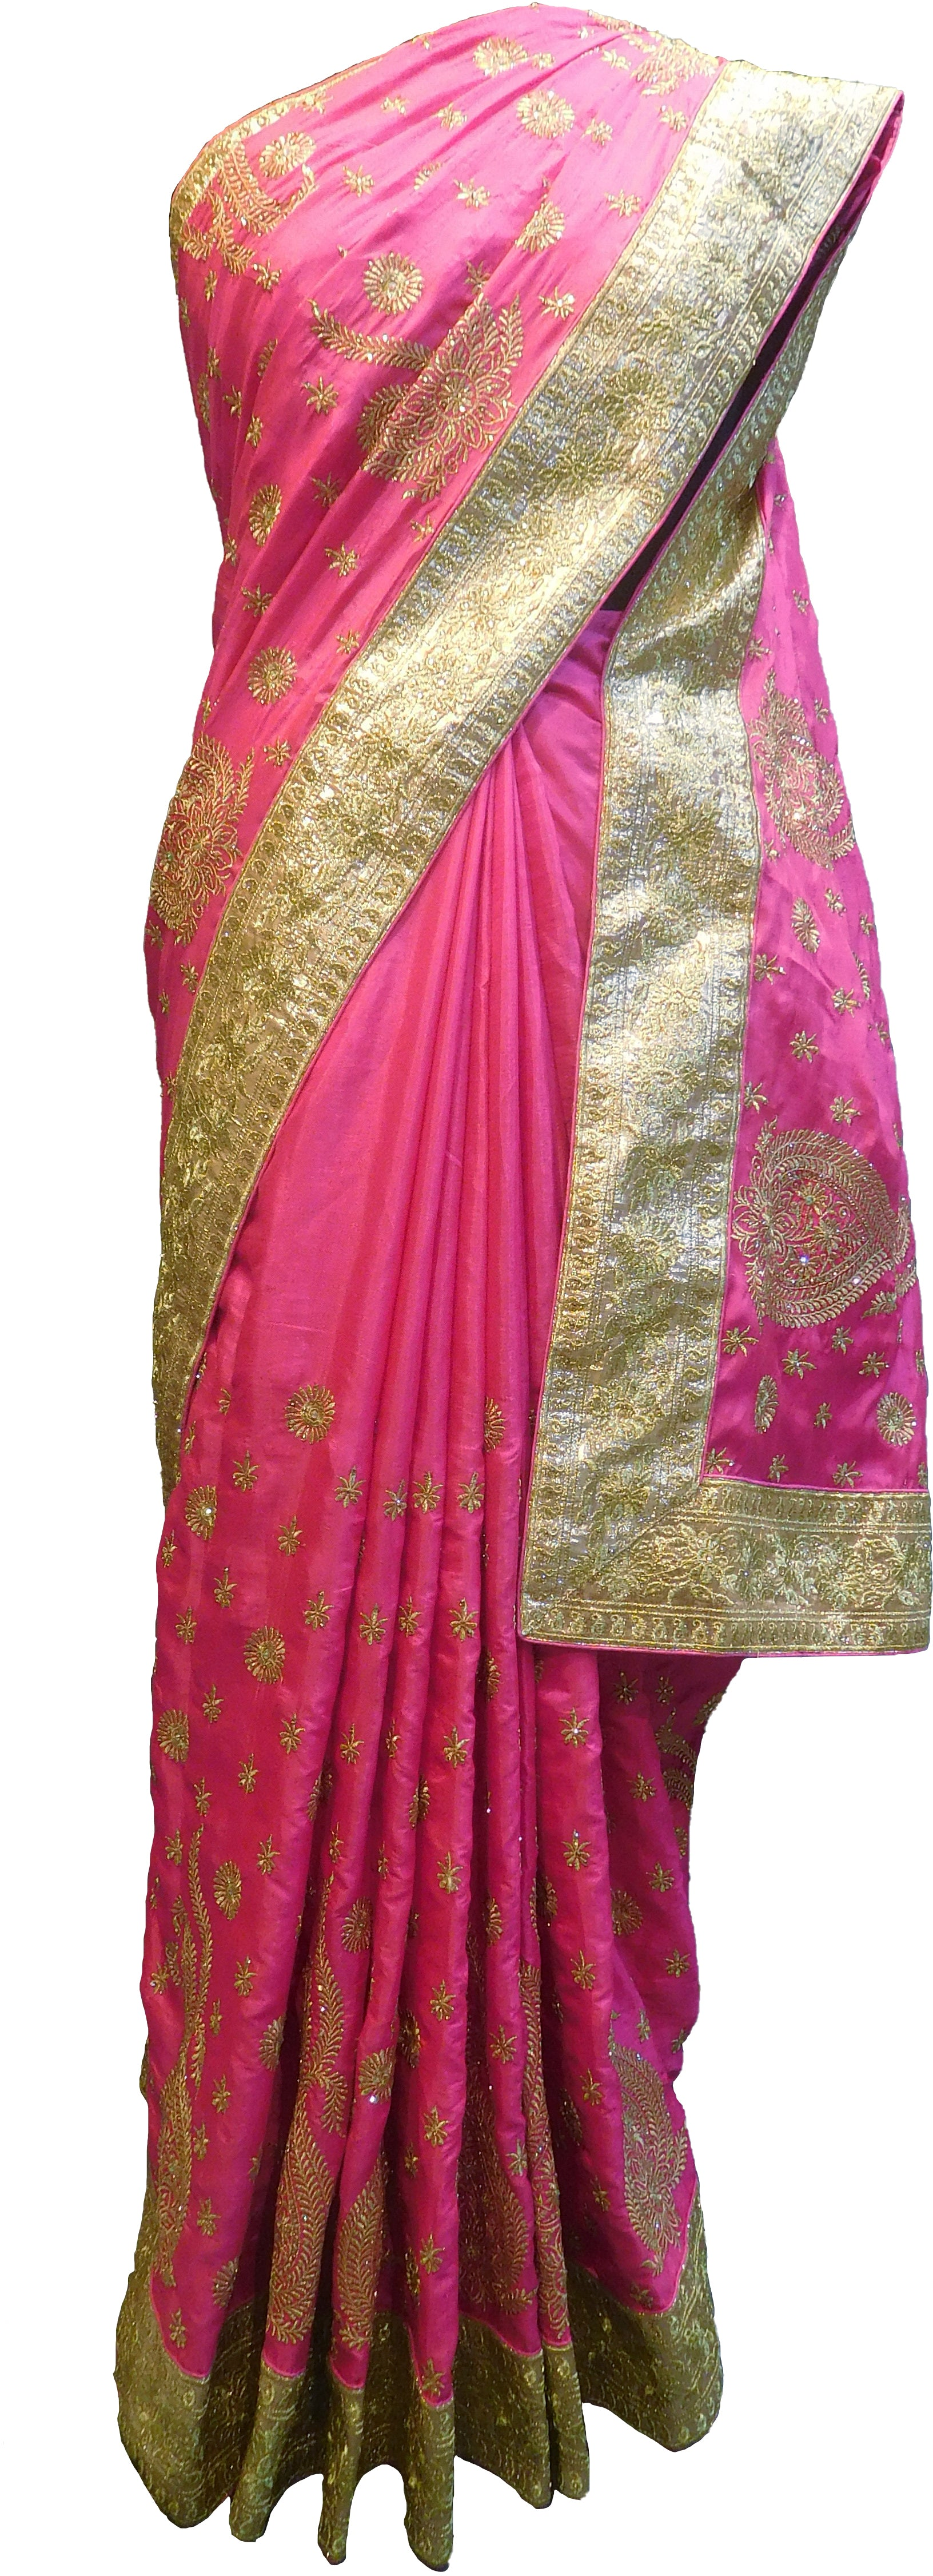 SMSAREE Pink Designer Wedding Partywear Silk Stone Cutdana & Zari Hand Embroidery Work Bridal Saree Sari With Blouse Piece F294